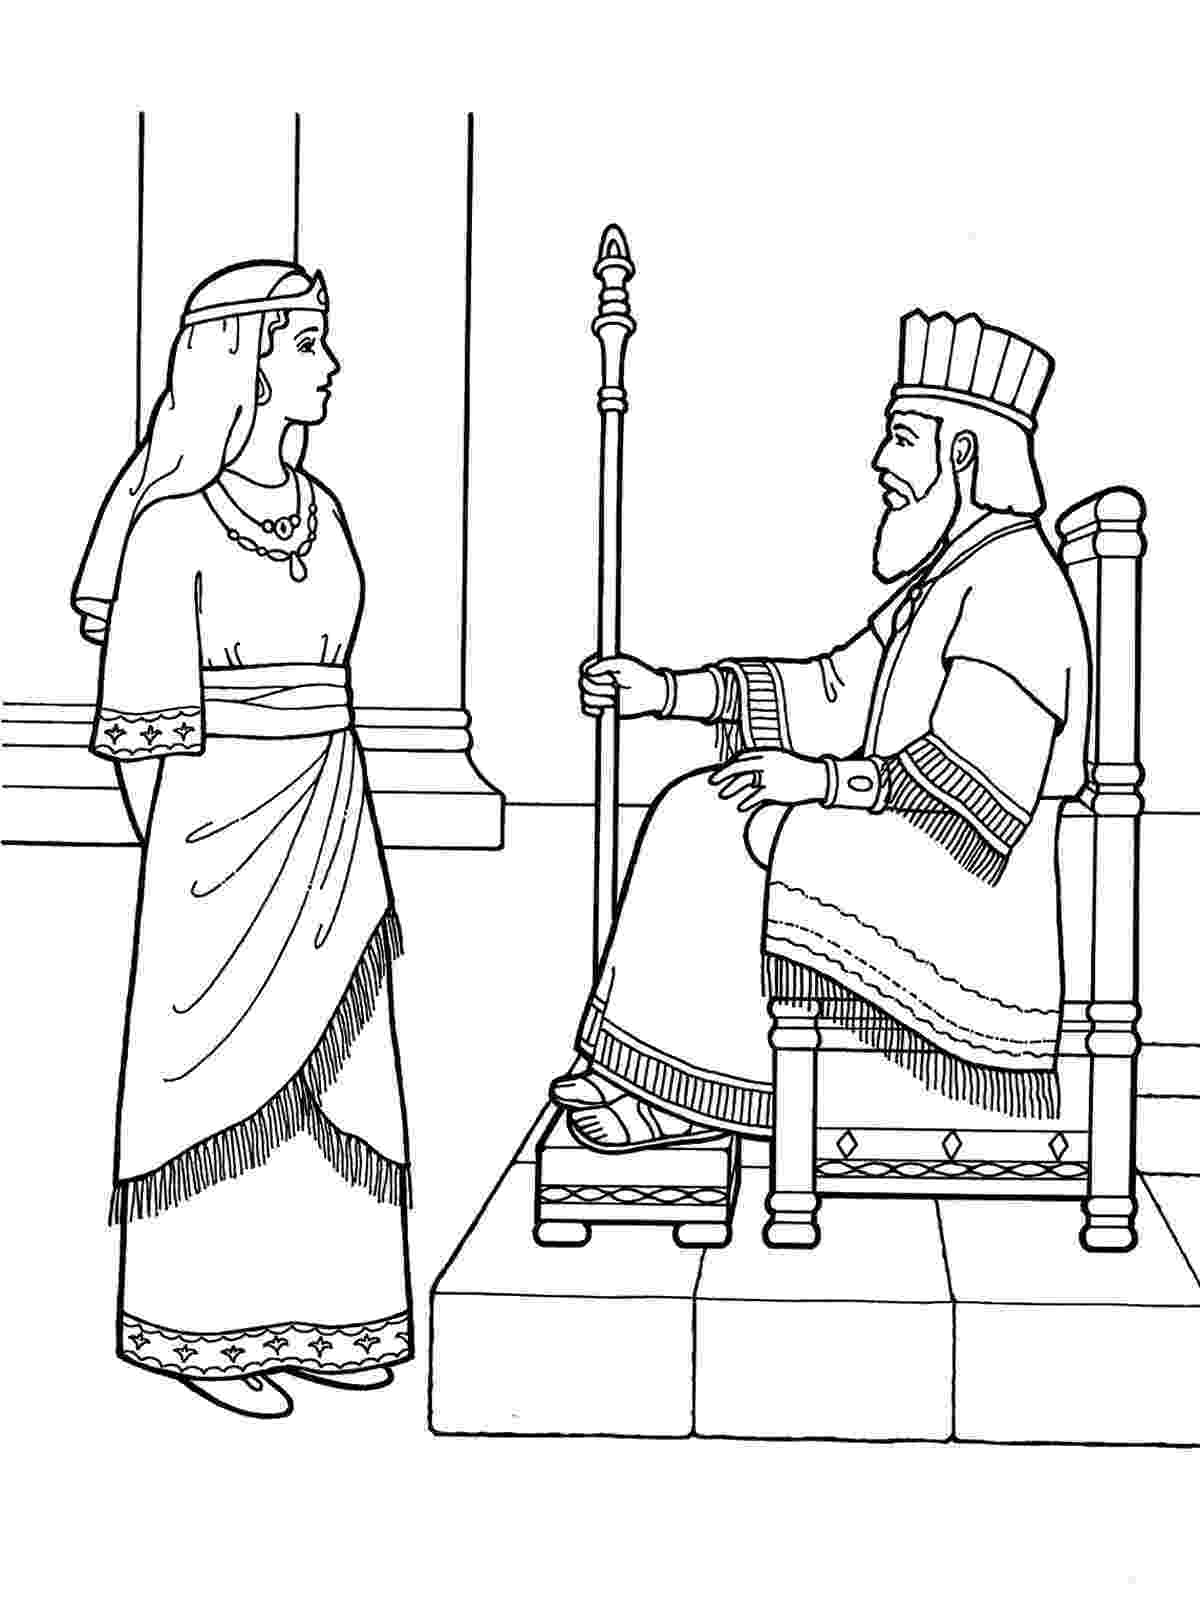 queen esther coloring pages king choose esther to be his queen esther coloring page queen esther coloring pages